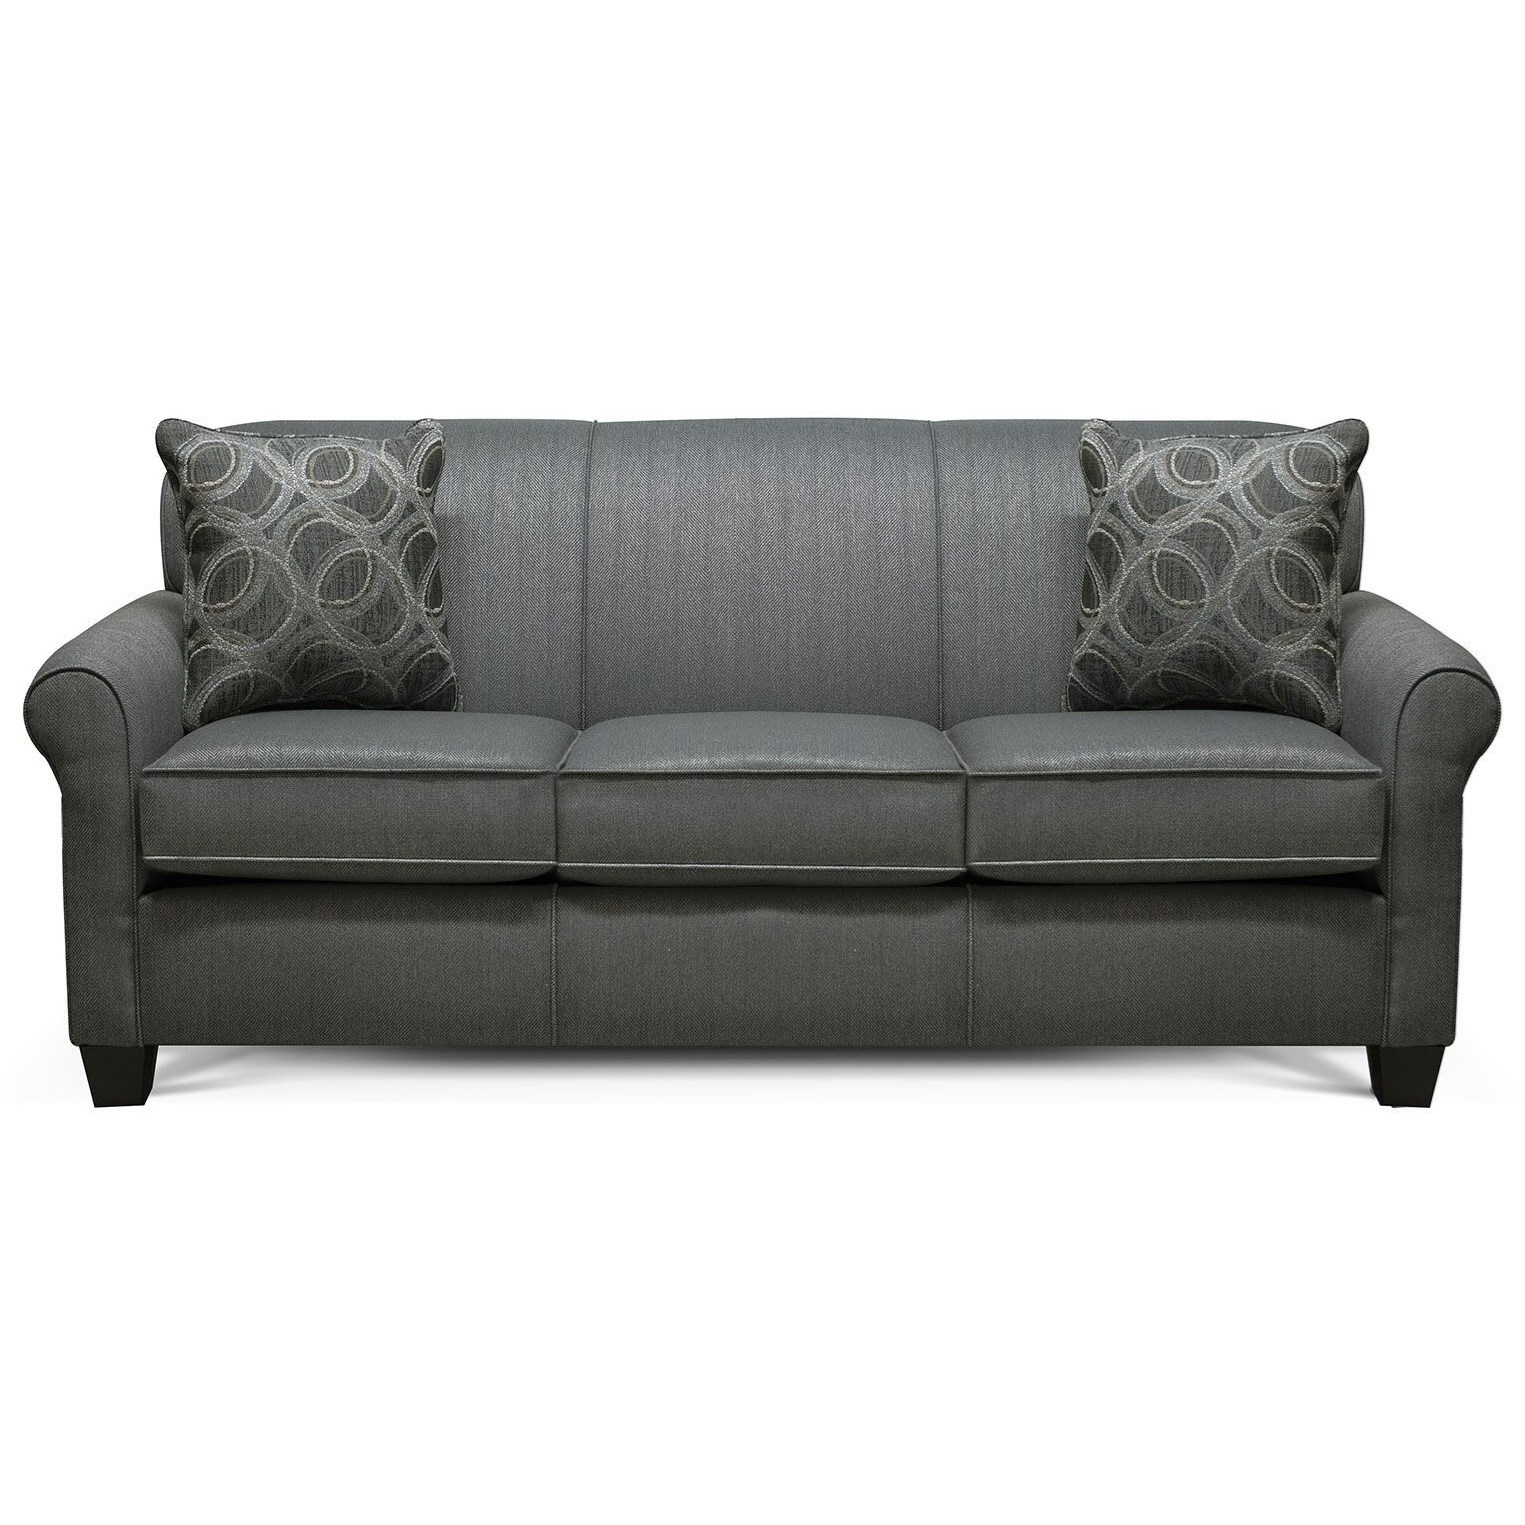 Angie  Casual Stationary Sofa by England at VanDrie Home Furnishings